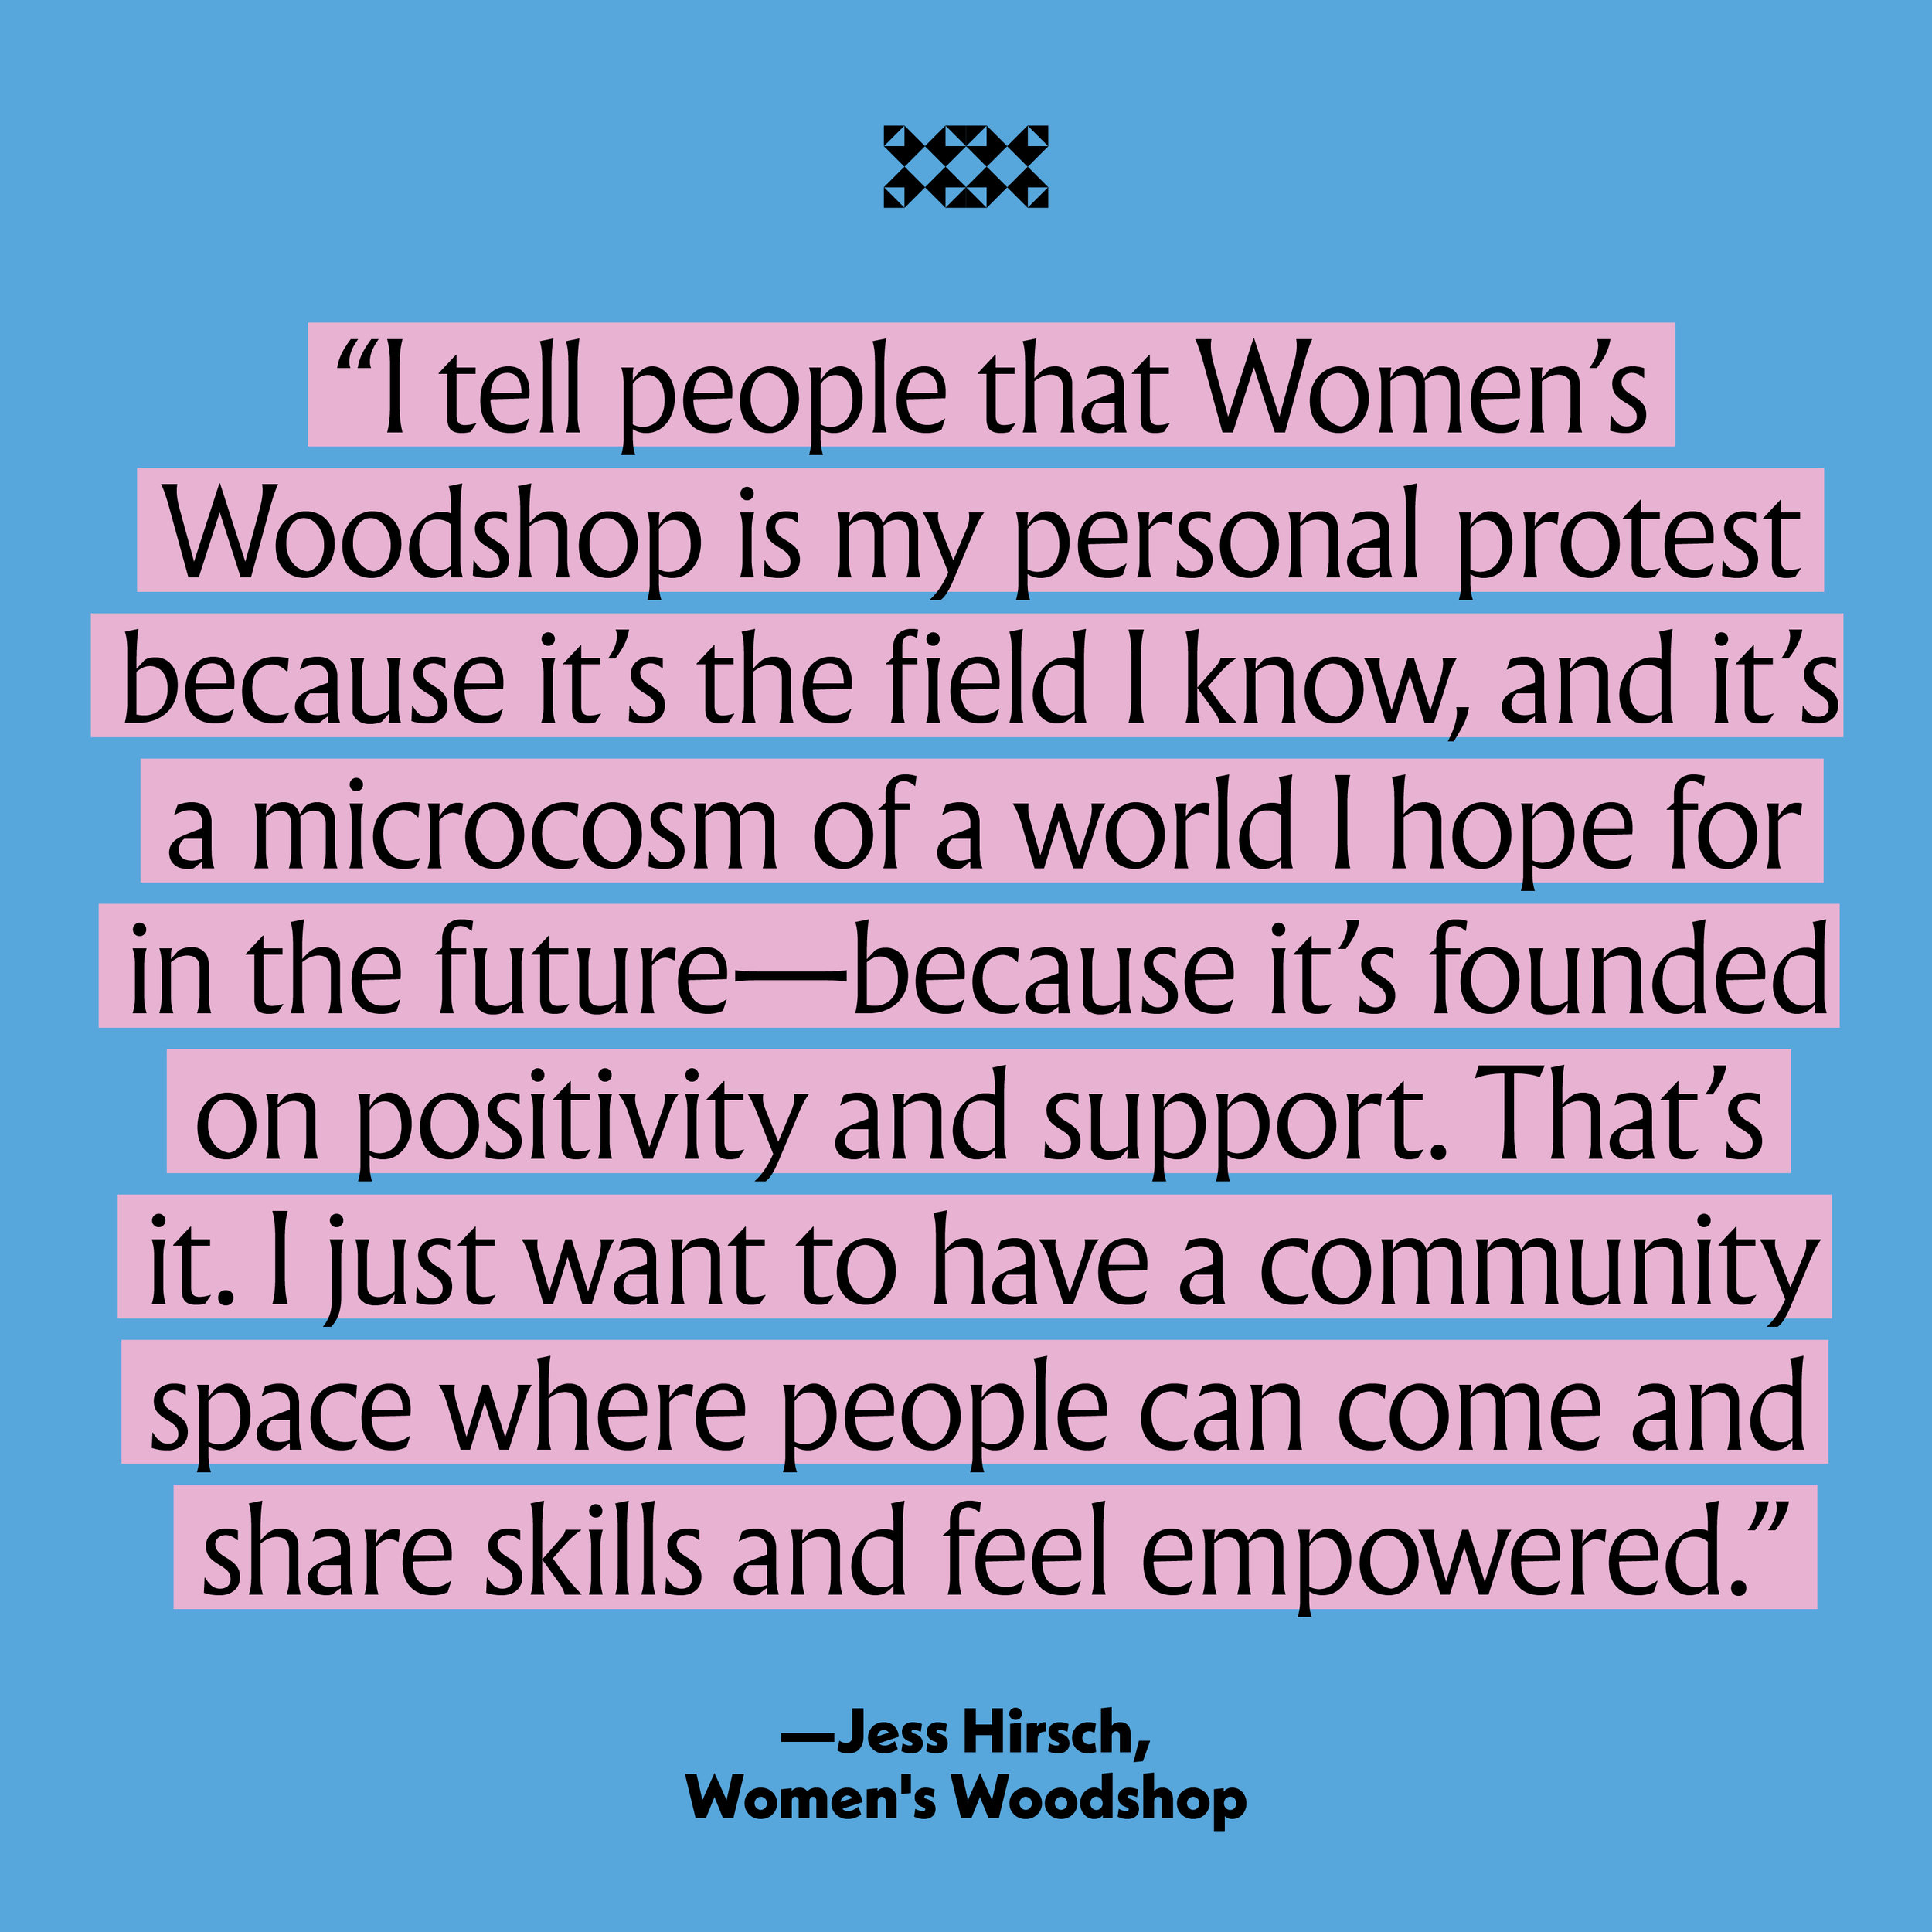 Women's Woodshop in the Vision Issue